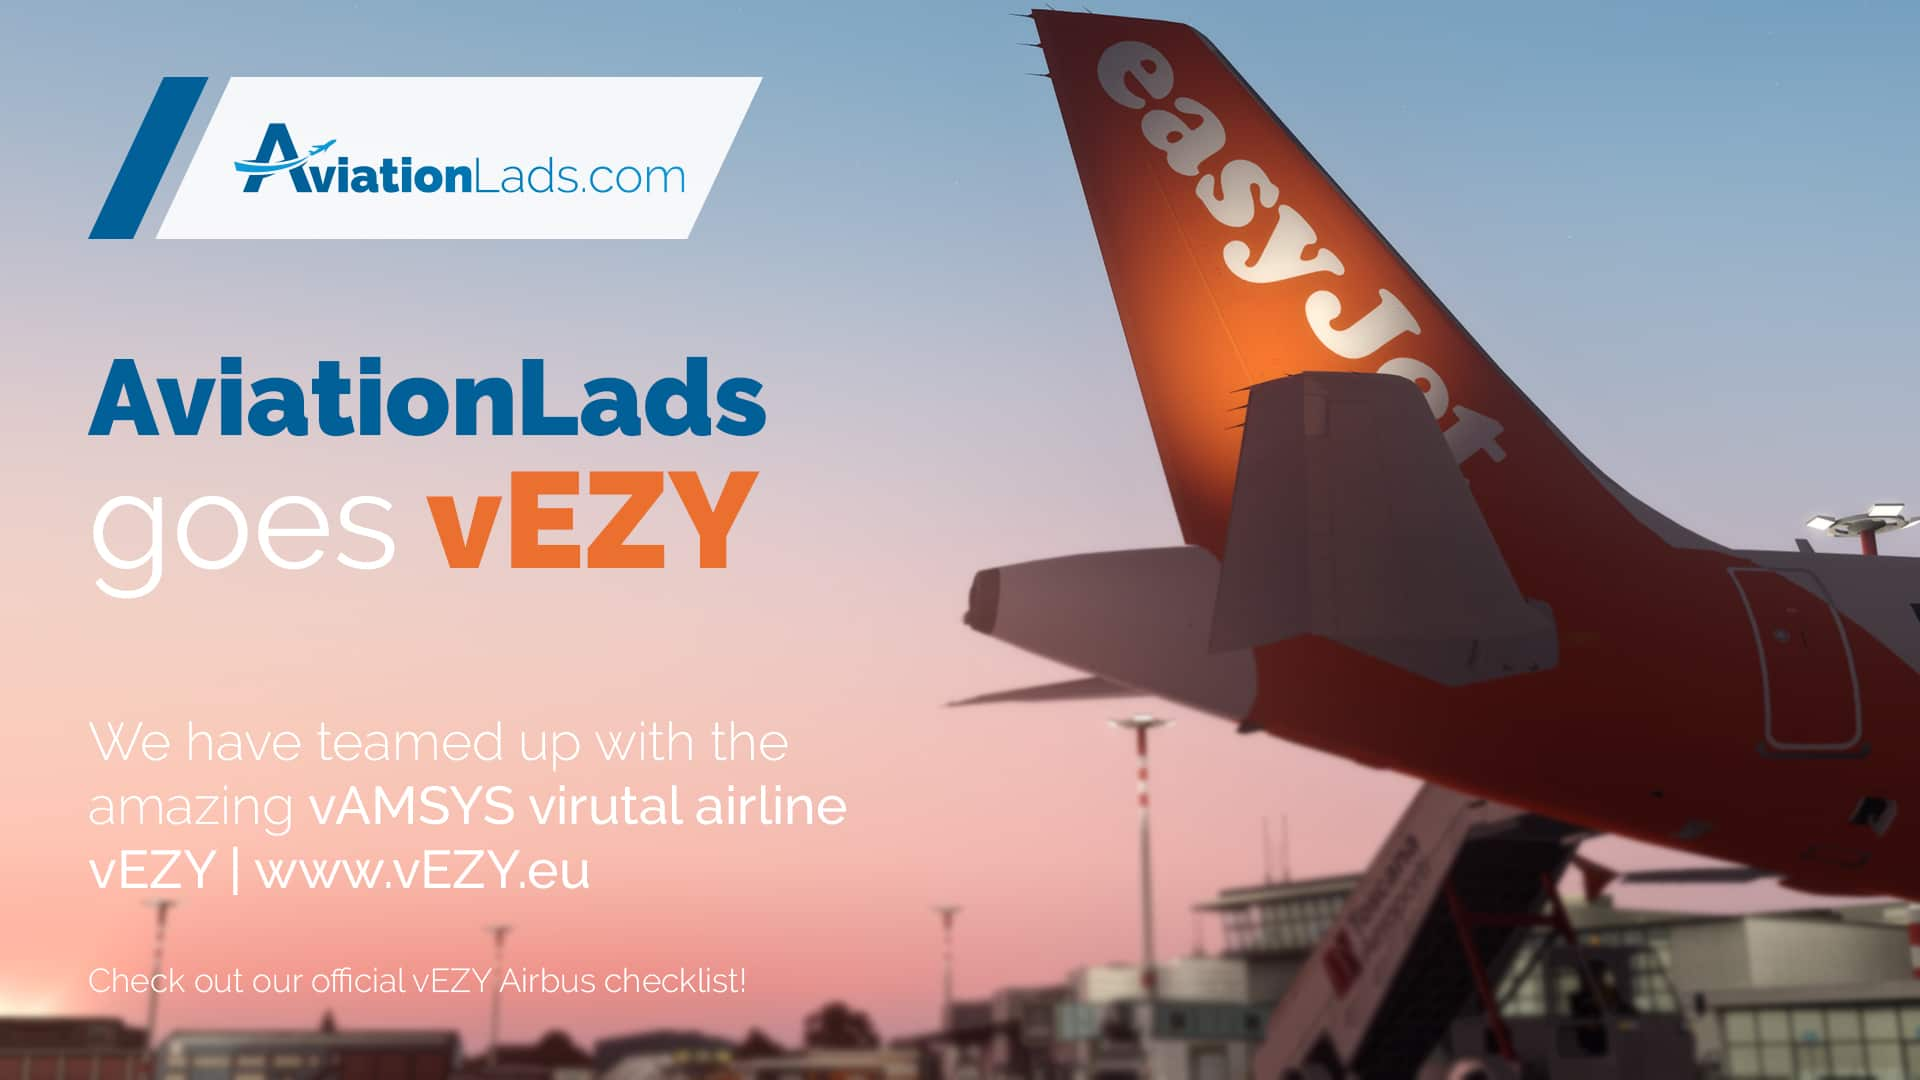 [TRAILER] vEZY | vAMSYS Virtual Airline